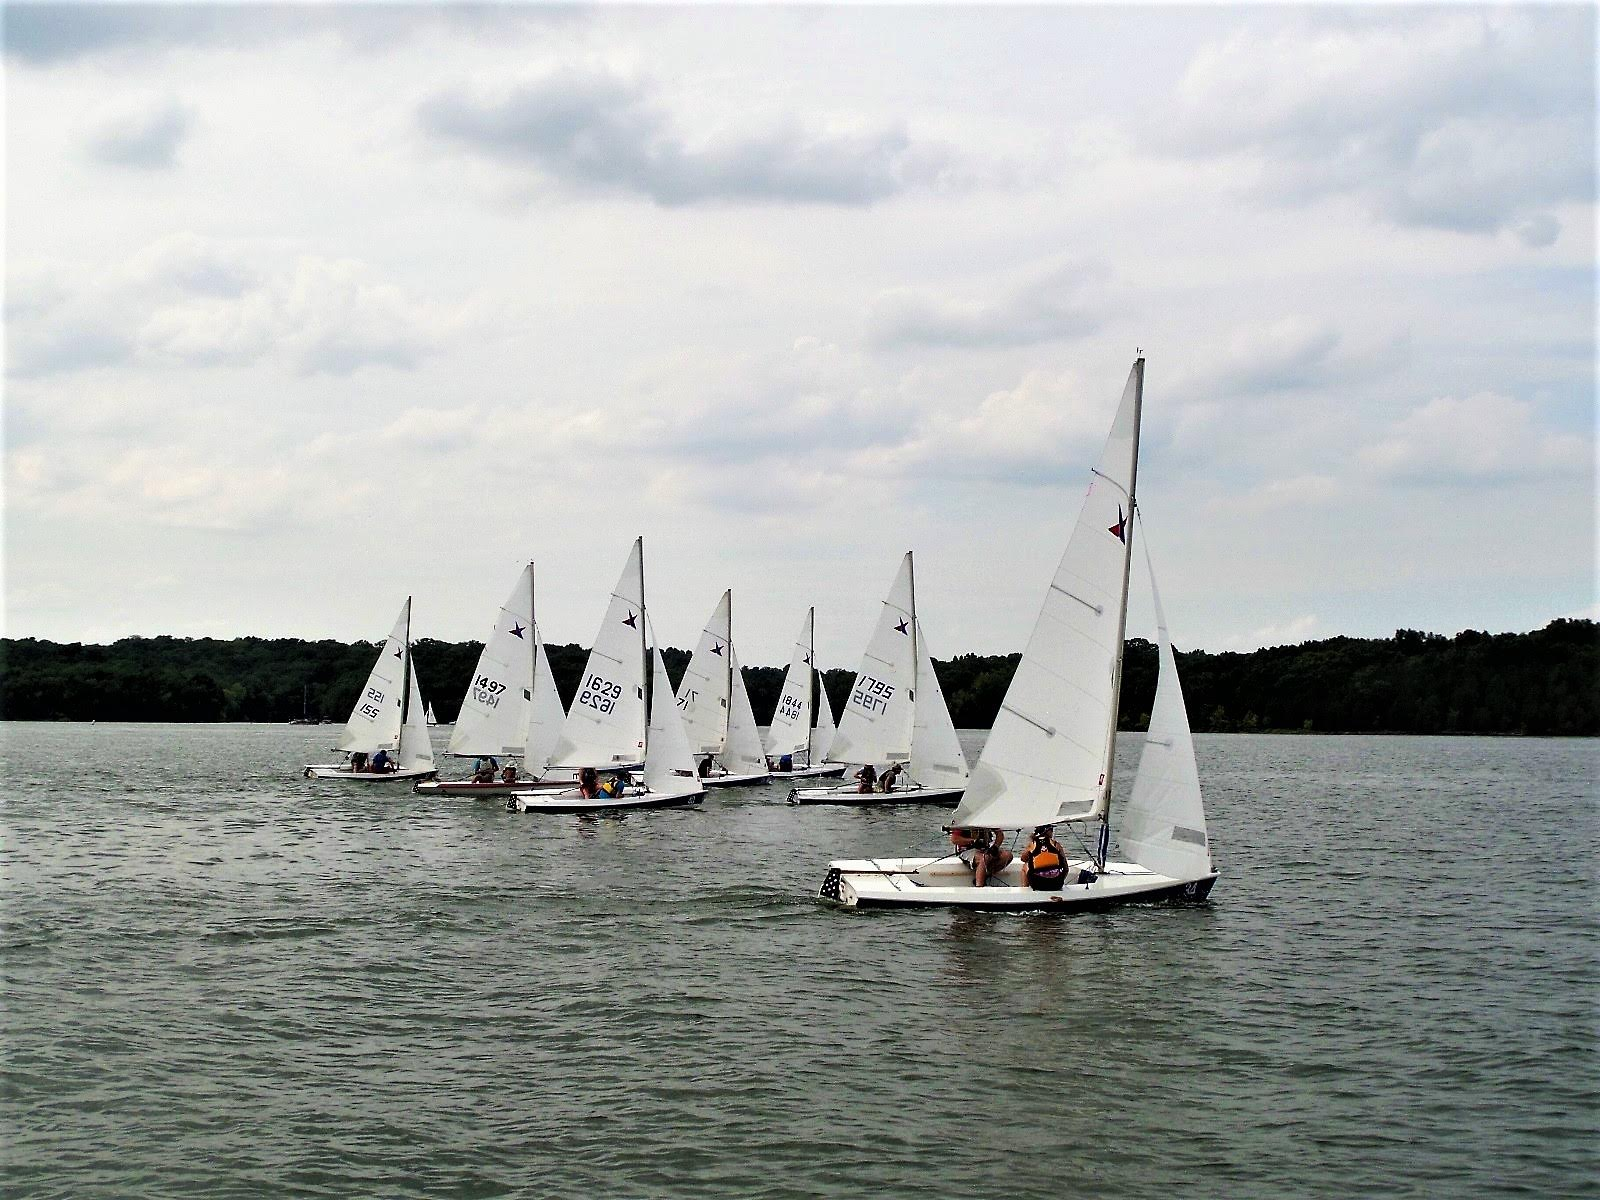 The fleet getting into formation, starting a race!